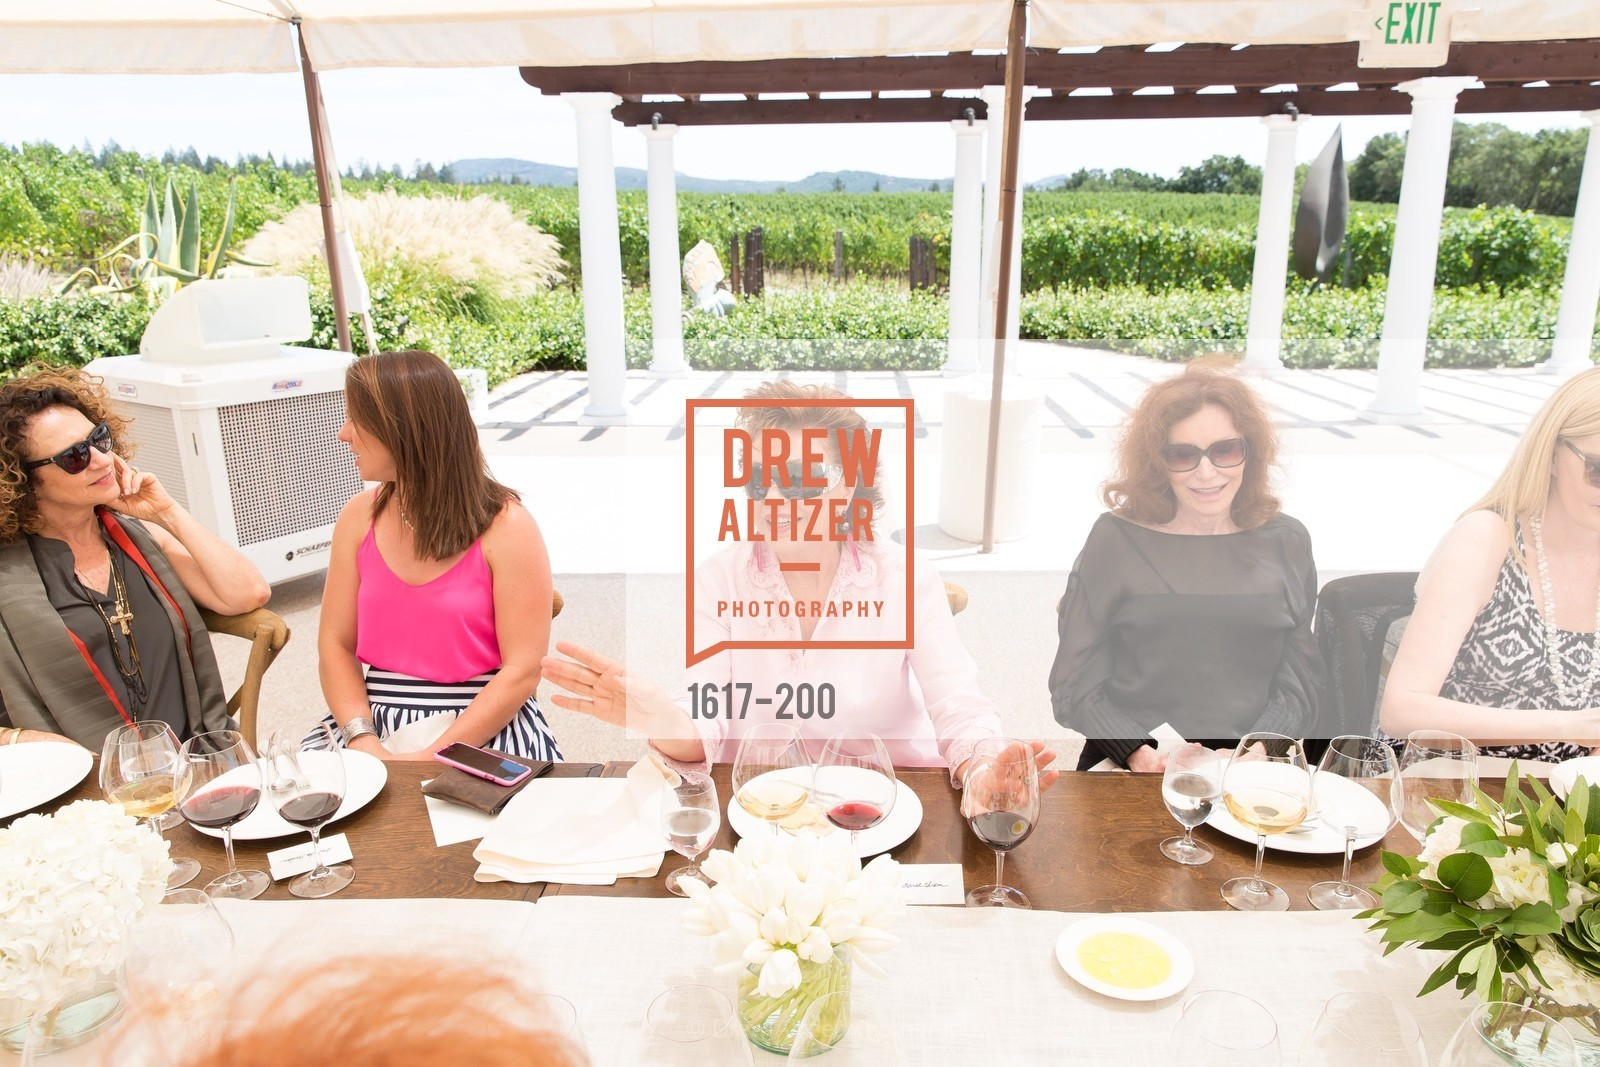 Maria Manetti Shrem, Ann Getty, Festival del Sole Brunello Cucinelli Luncheon Hosted by Hall Wines and Neiman Marcus, P\. 56 Auberge Rd, July 19th, 2015,Drew Altizer, Drew Altizer Photography, full-service event agency, private events, San Francisco photographer, photographer California